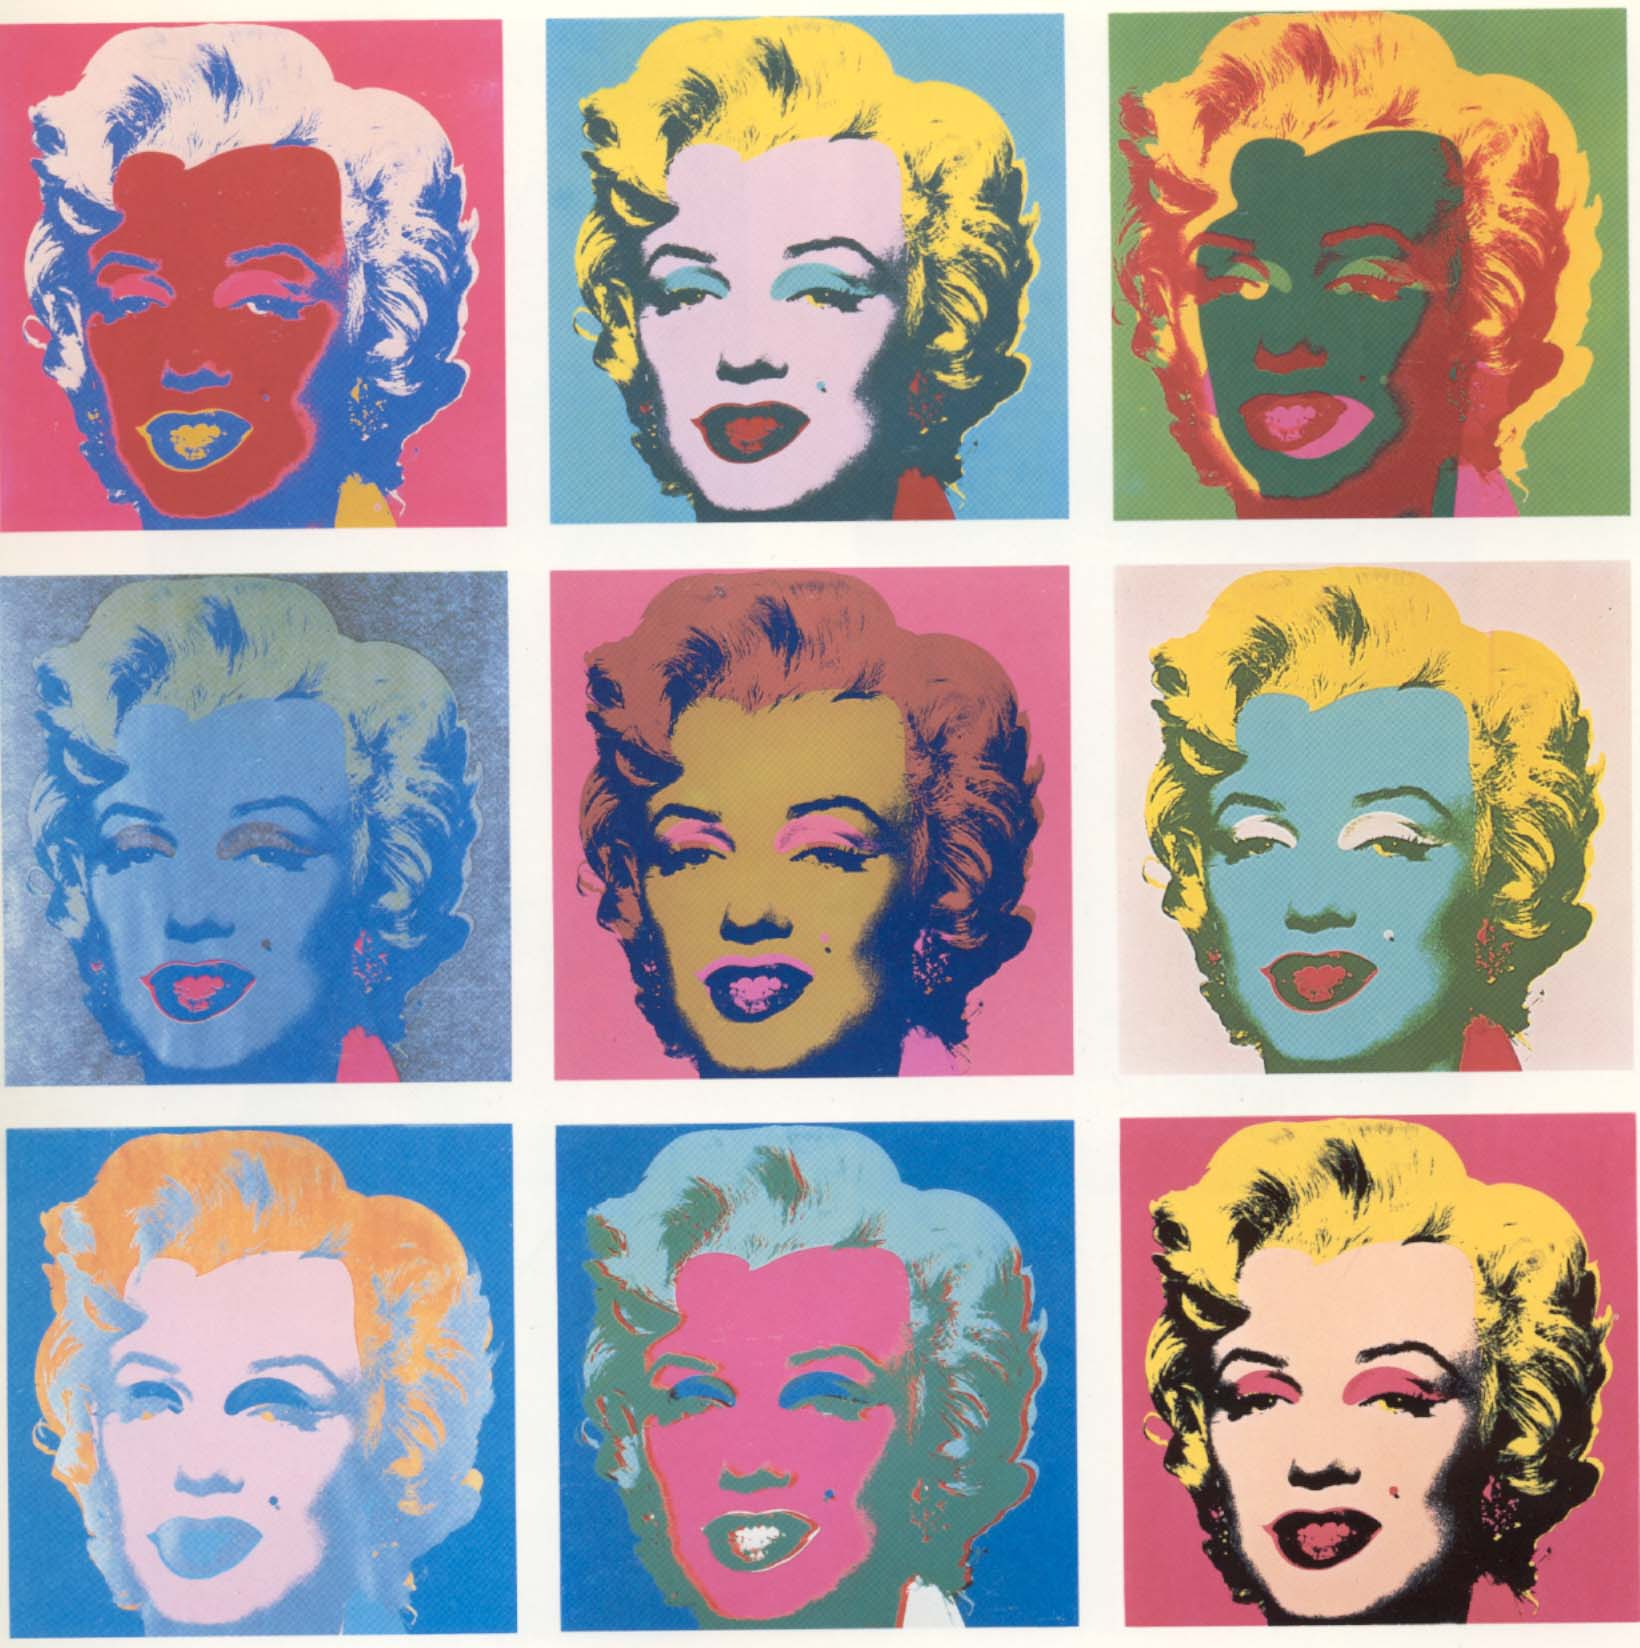 Marilyn Monroe poster by Andy Warhol